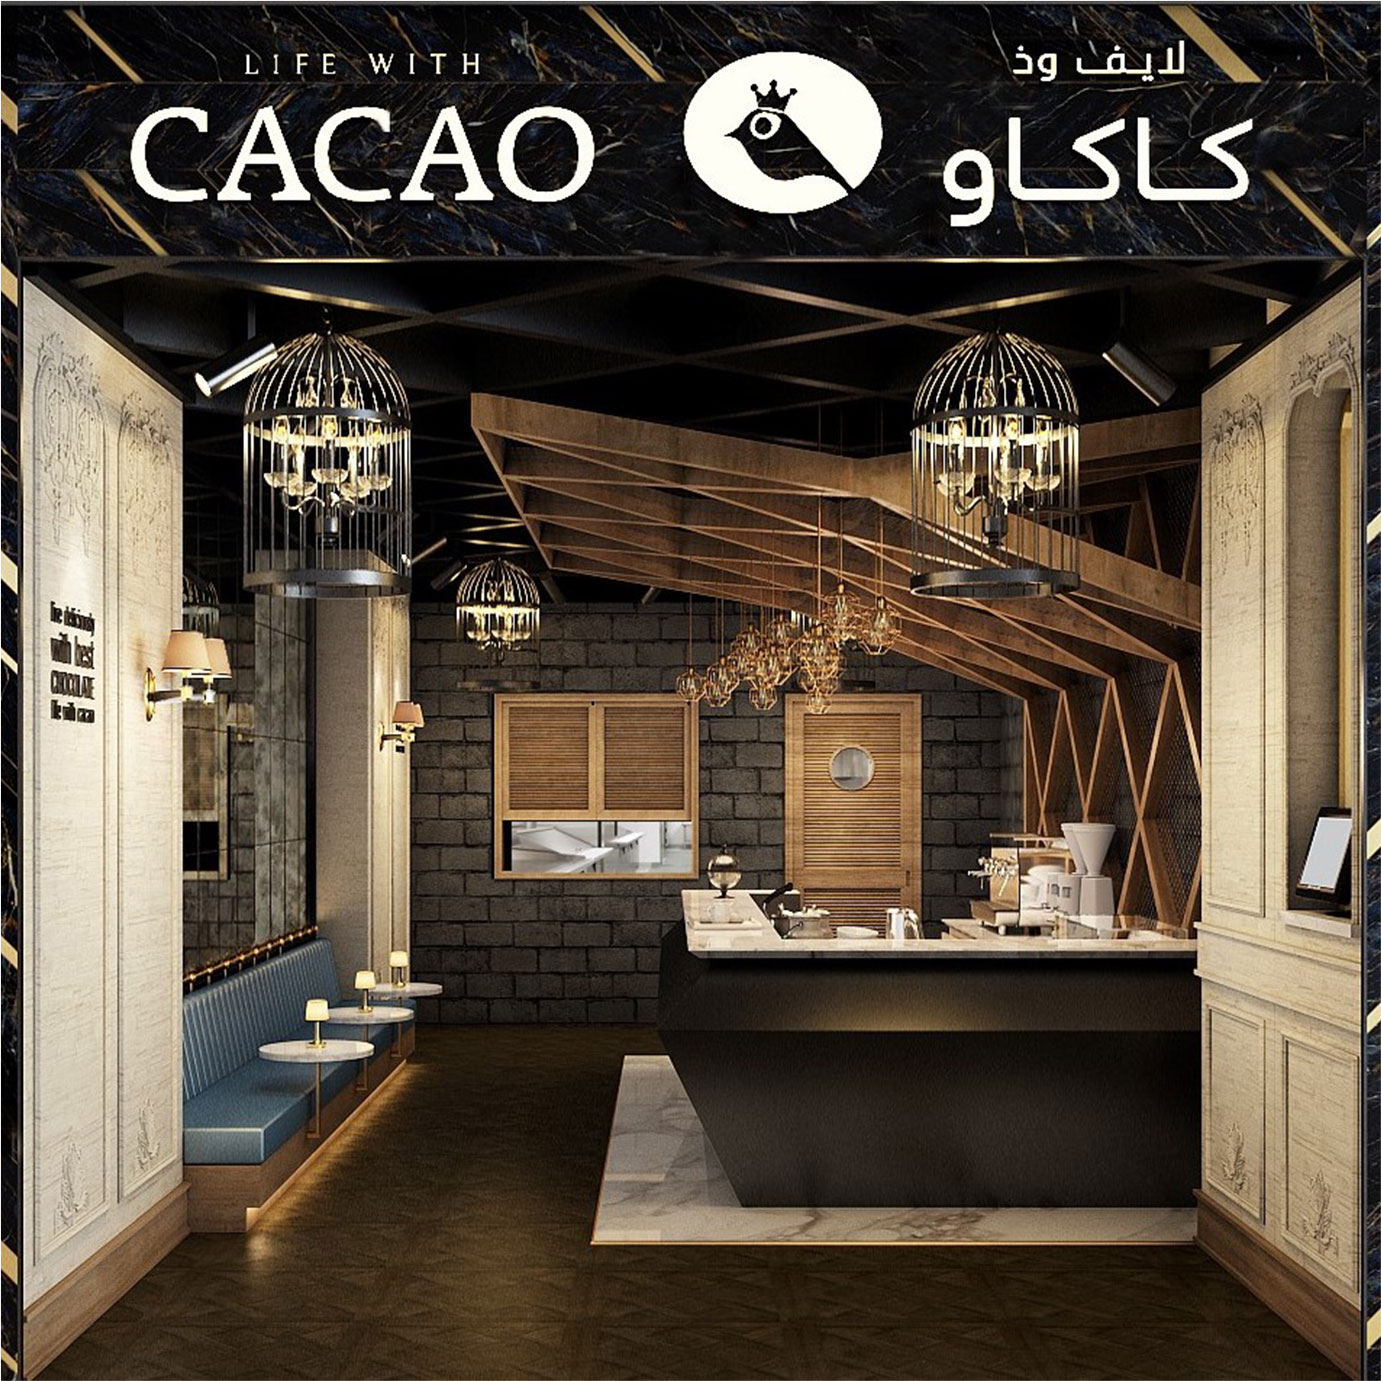 Life with cacao supervisor and general contract management Kuwait and Turkey